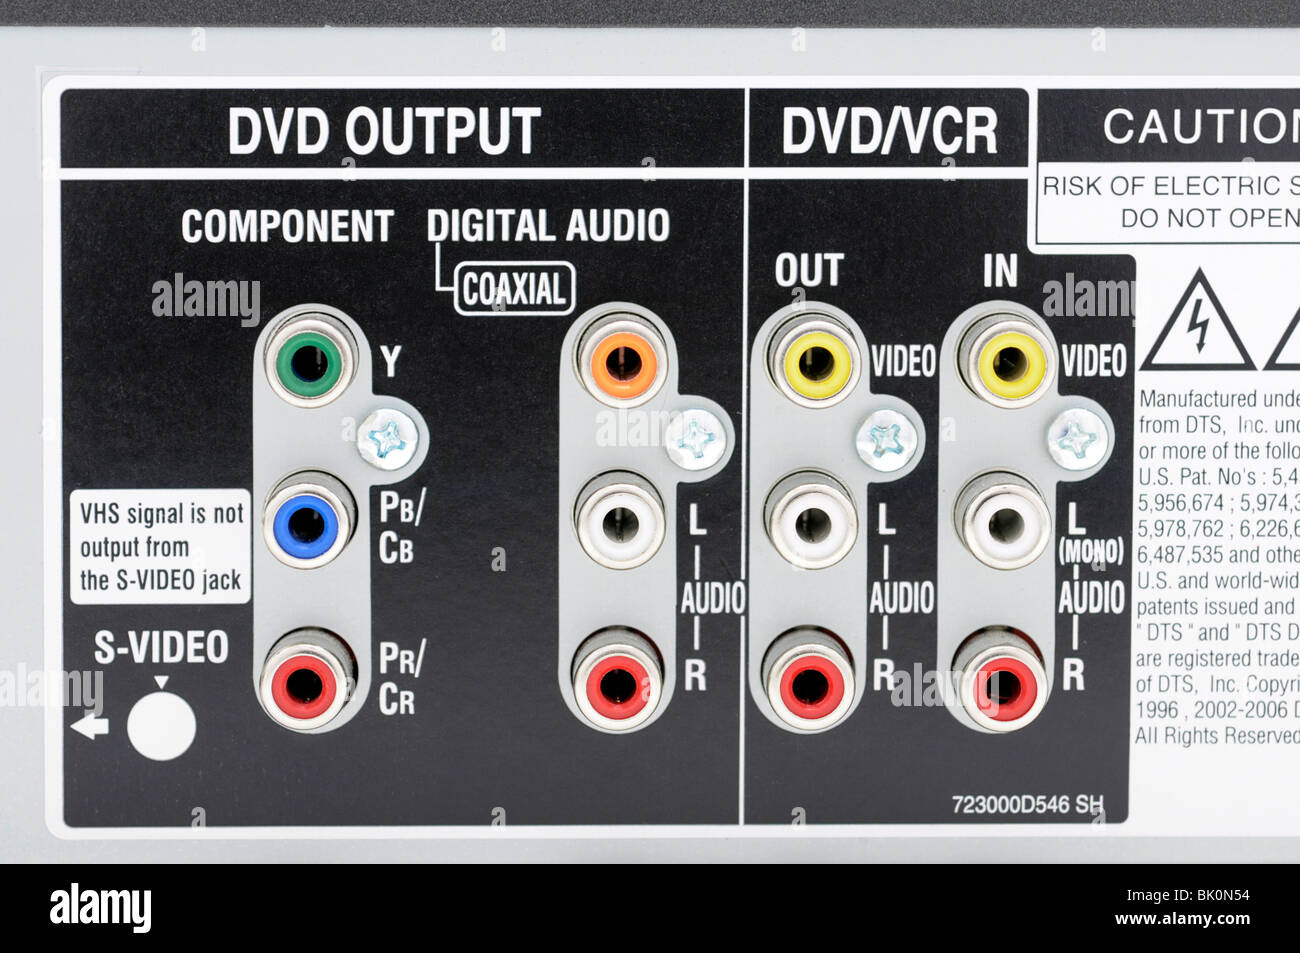 Back Panel of DVD/VCR Combo - Inputs and Outputs - Stock Image